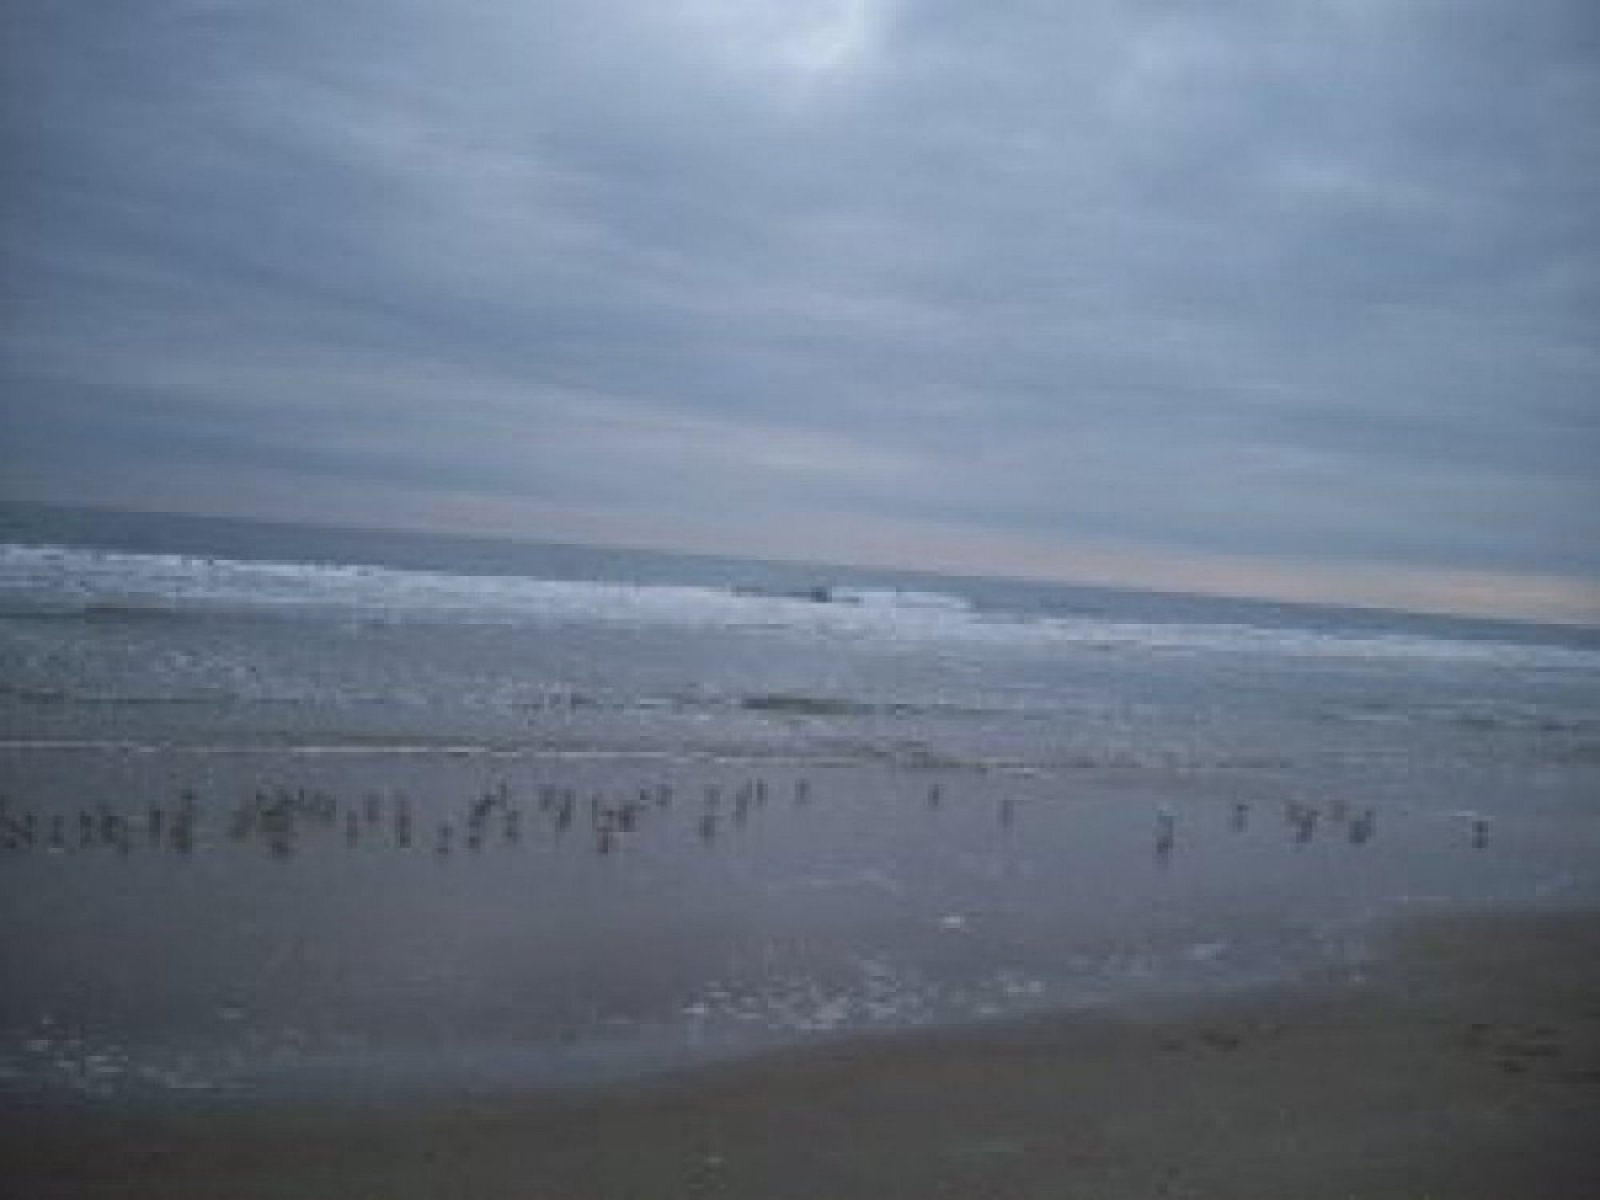 plovers-on-the-beach